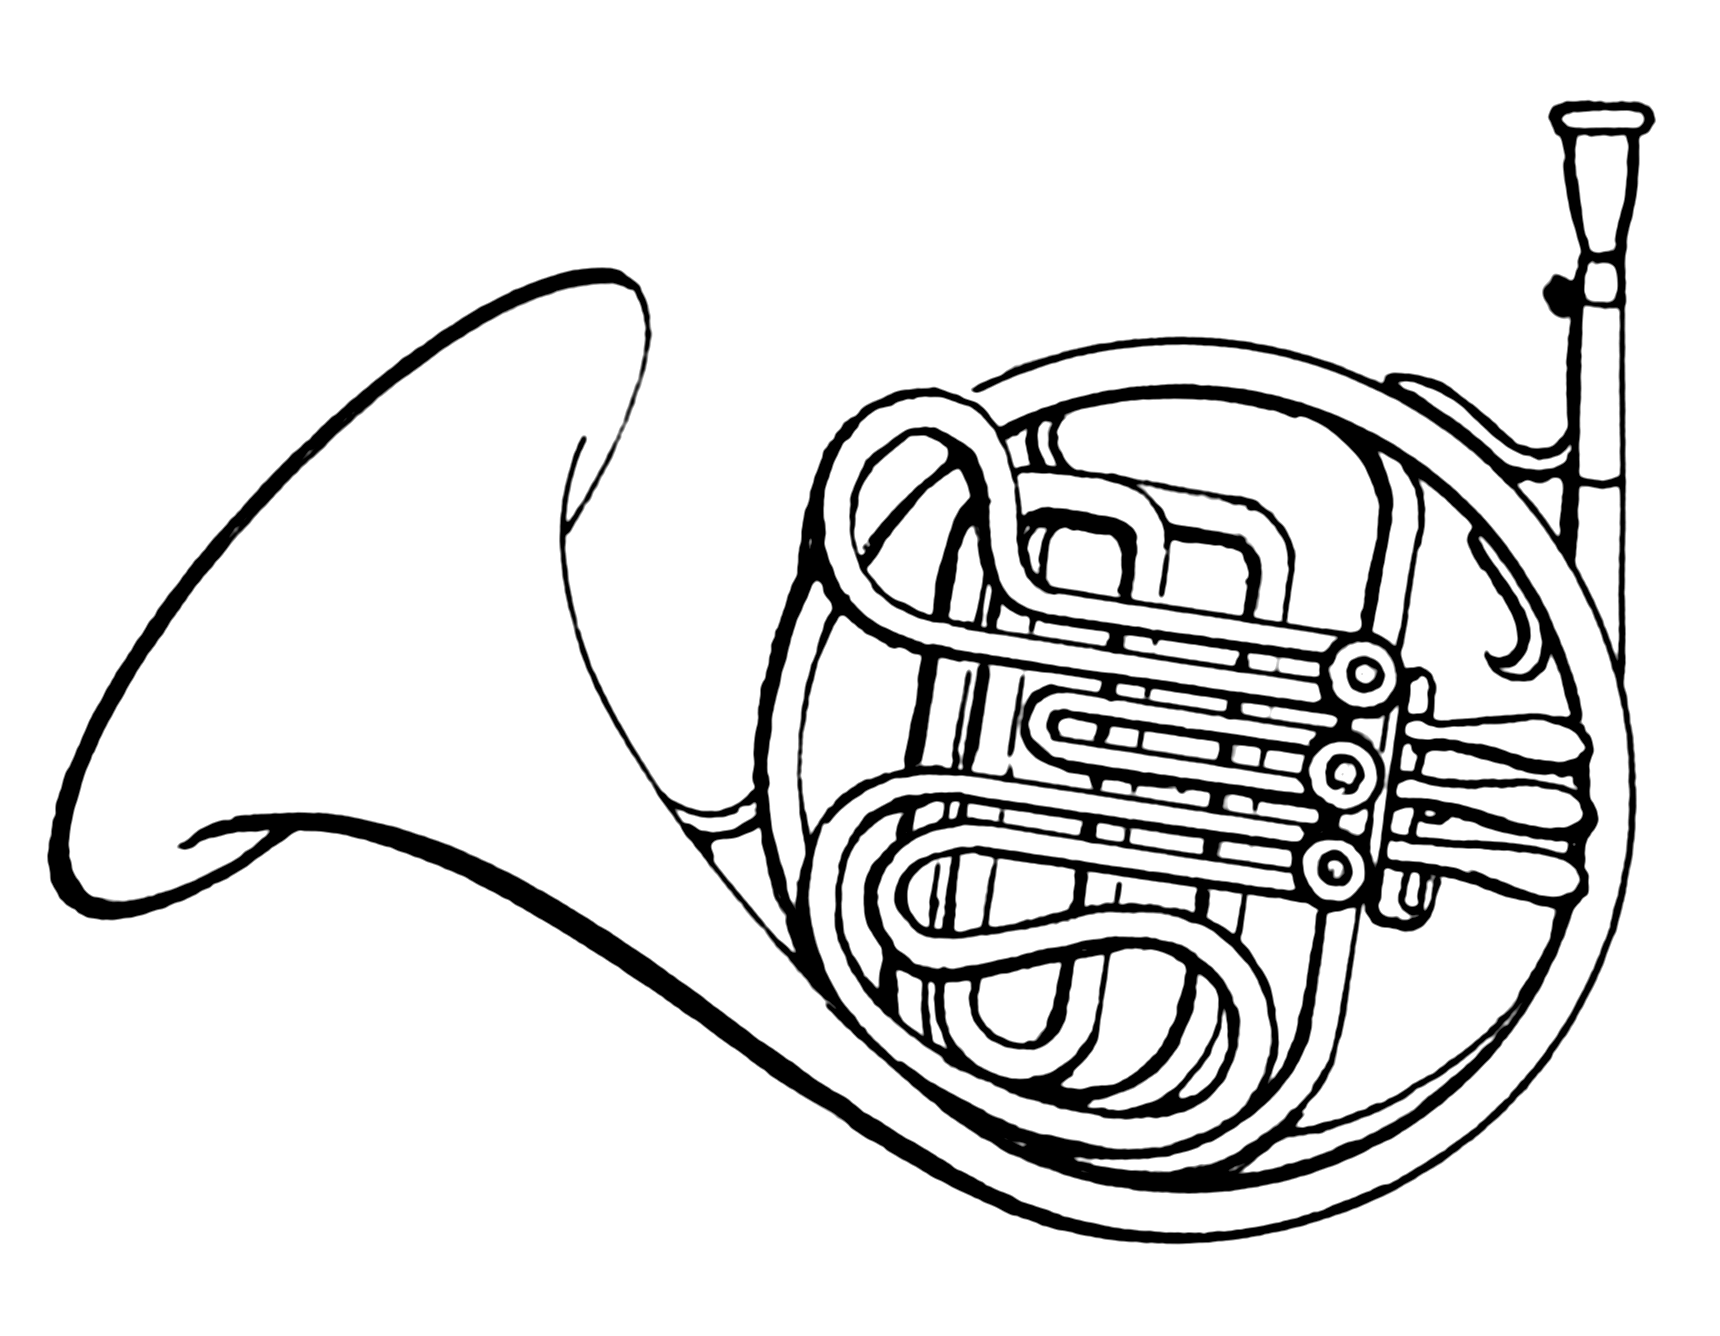 File:French horn (PSF).png - Wikimedia Commons\